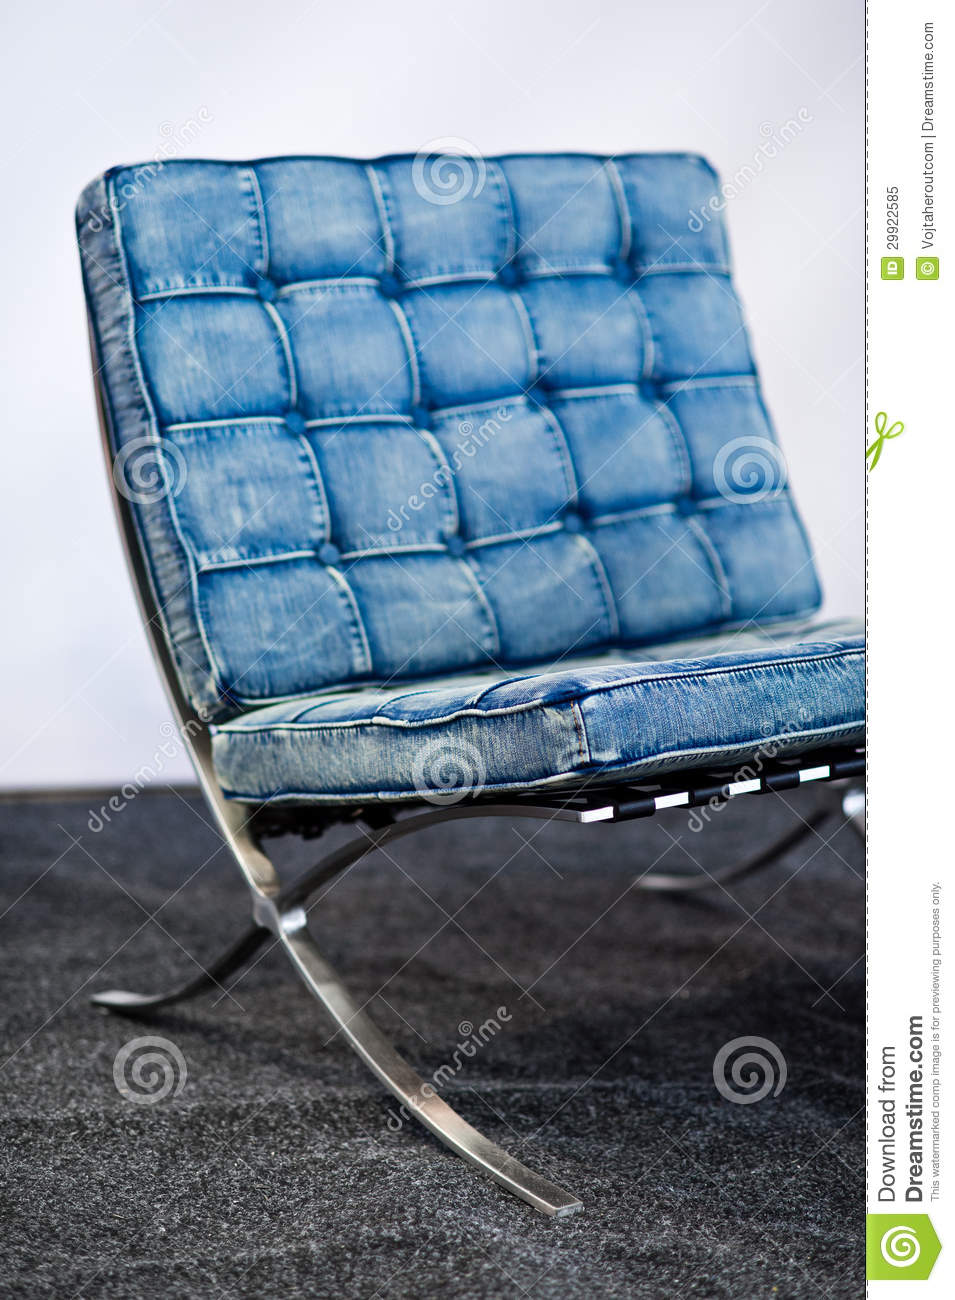 Chaise c l bre de barcelone dans la couleur de blues jean for Designer de chaise celebre